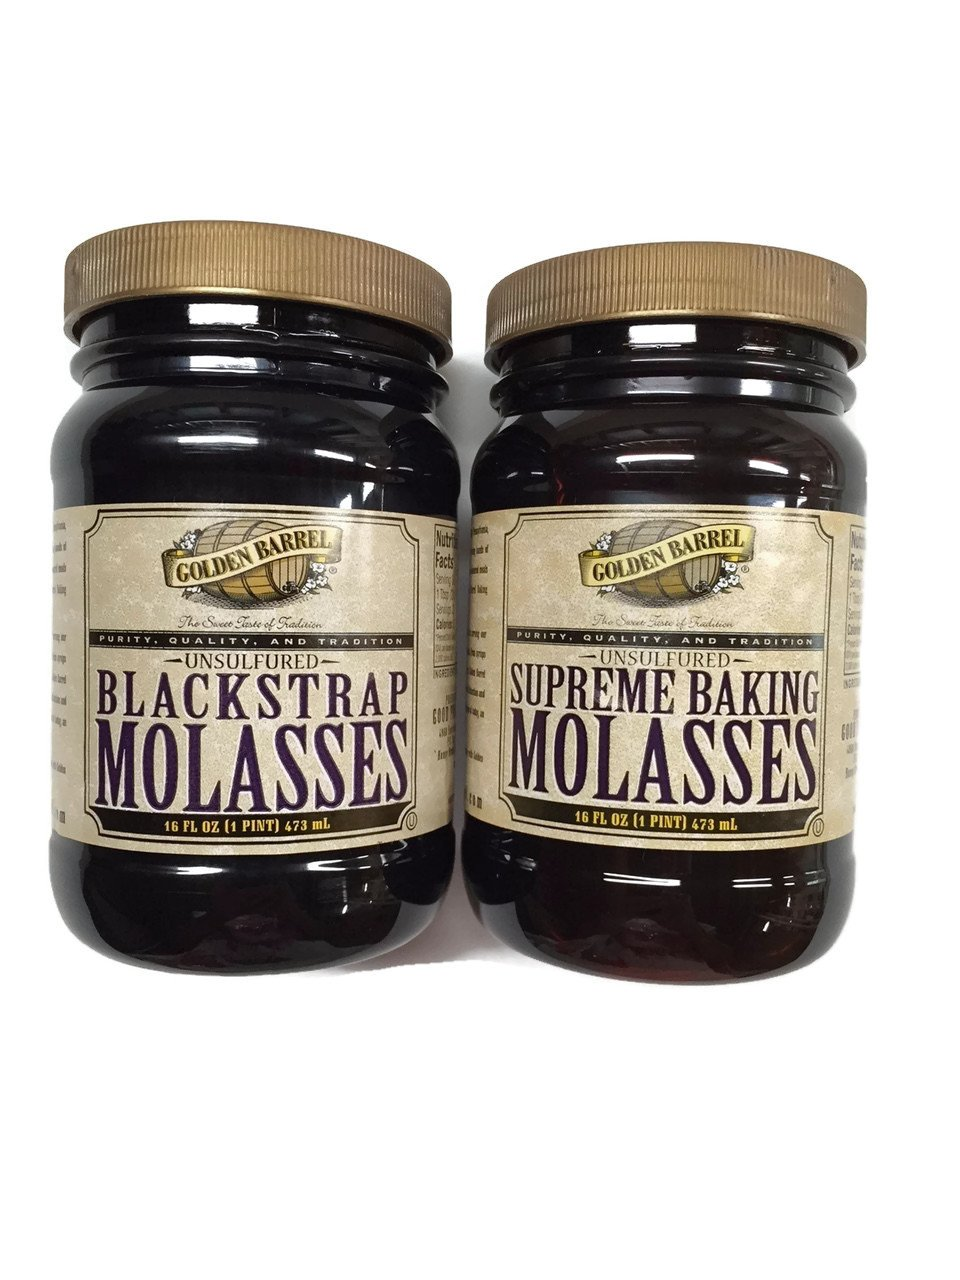 Golden Barrel Blackstrap Molasses & Supreme Baking Molasses, 16 Oz. Wide Mouth Jars [1 of Each]